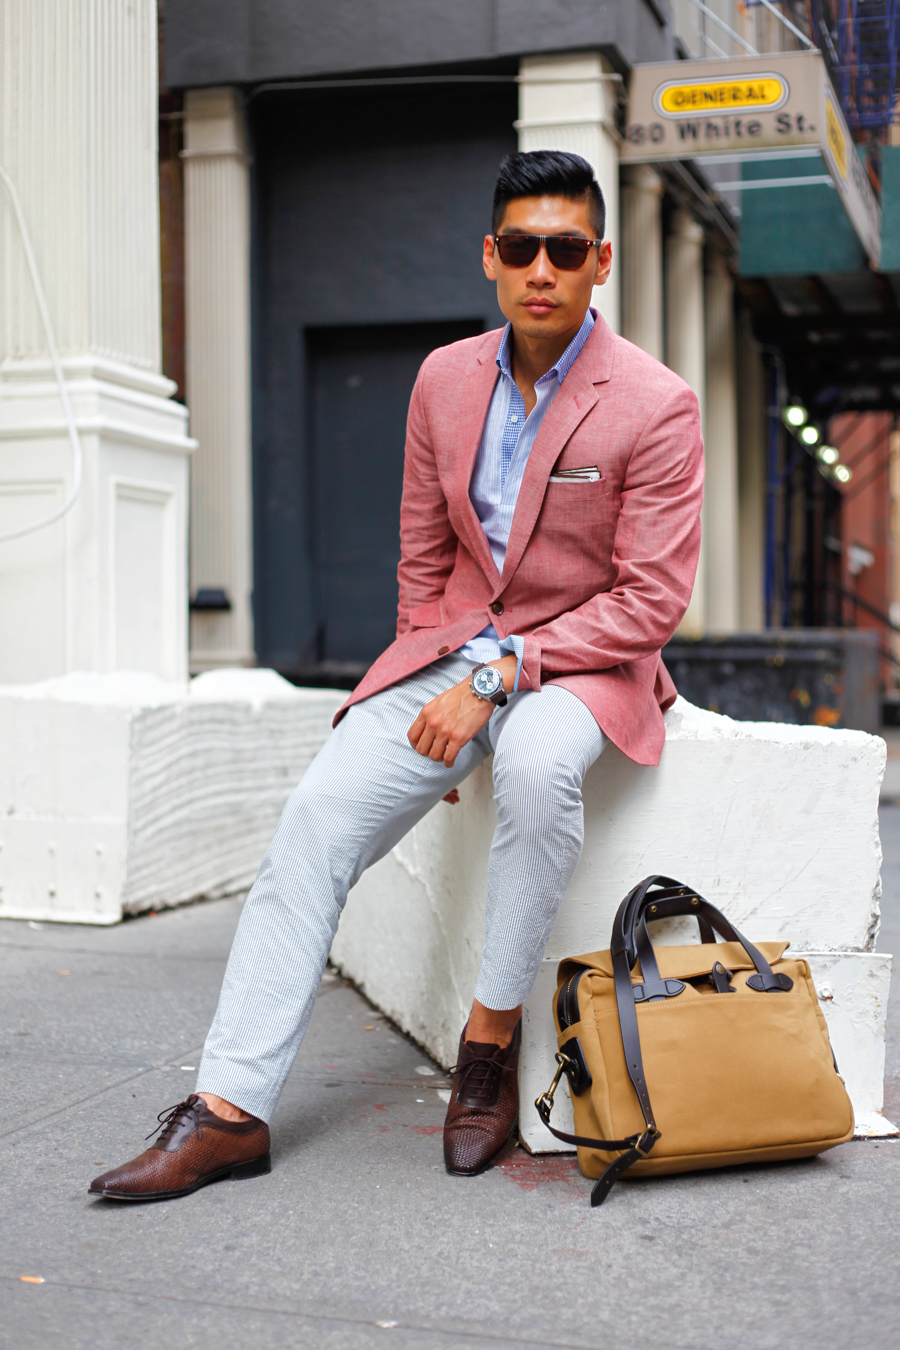 Levitate Style Linen NYFWM | Summer Linen Summer Style feat. J.Crew, The Tailory NY & Paul Drish